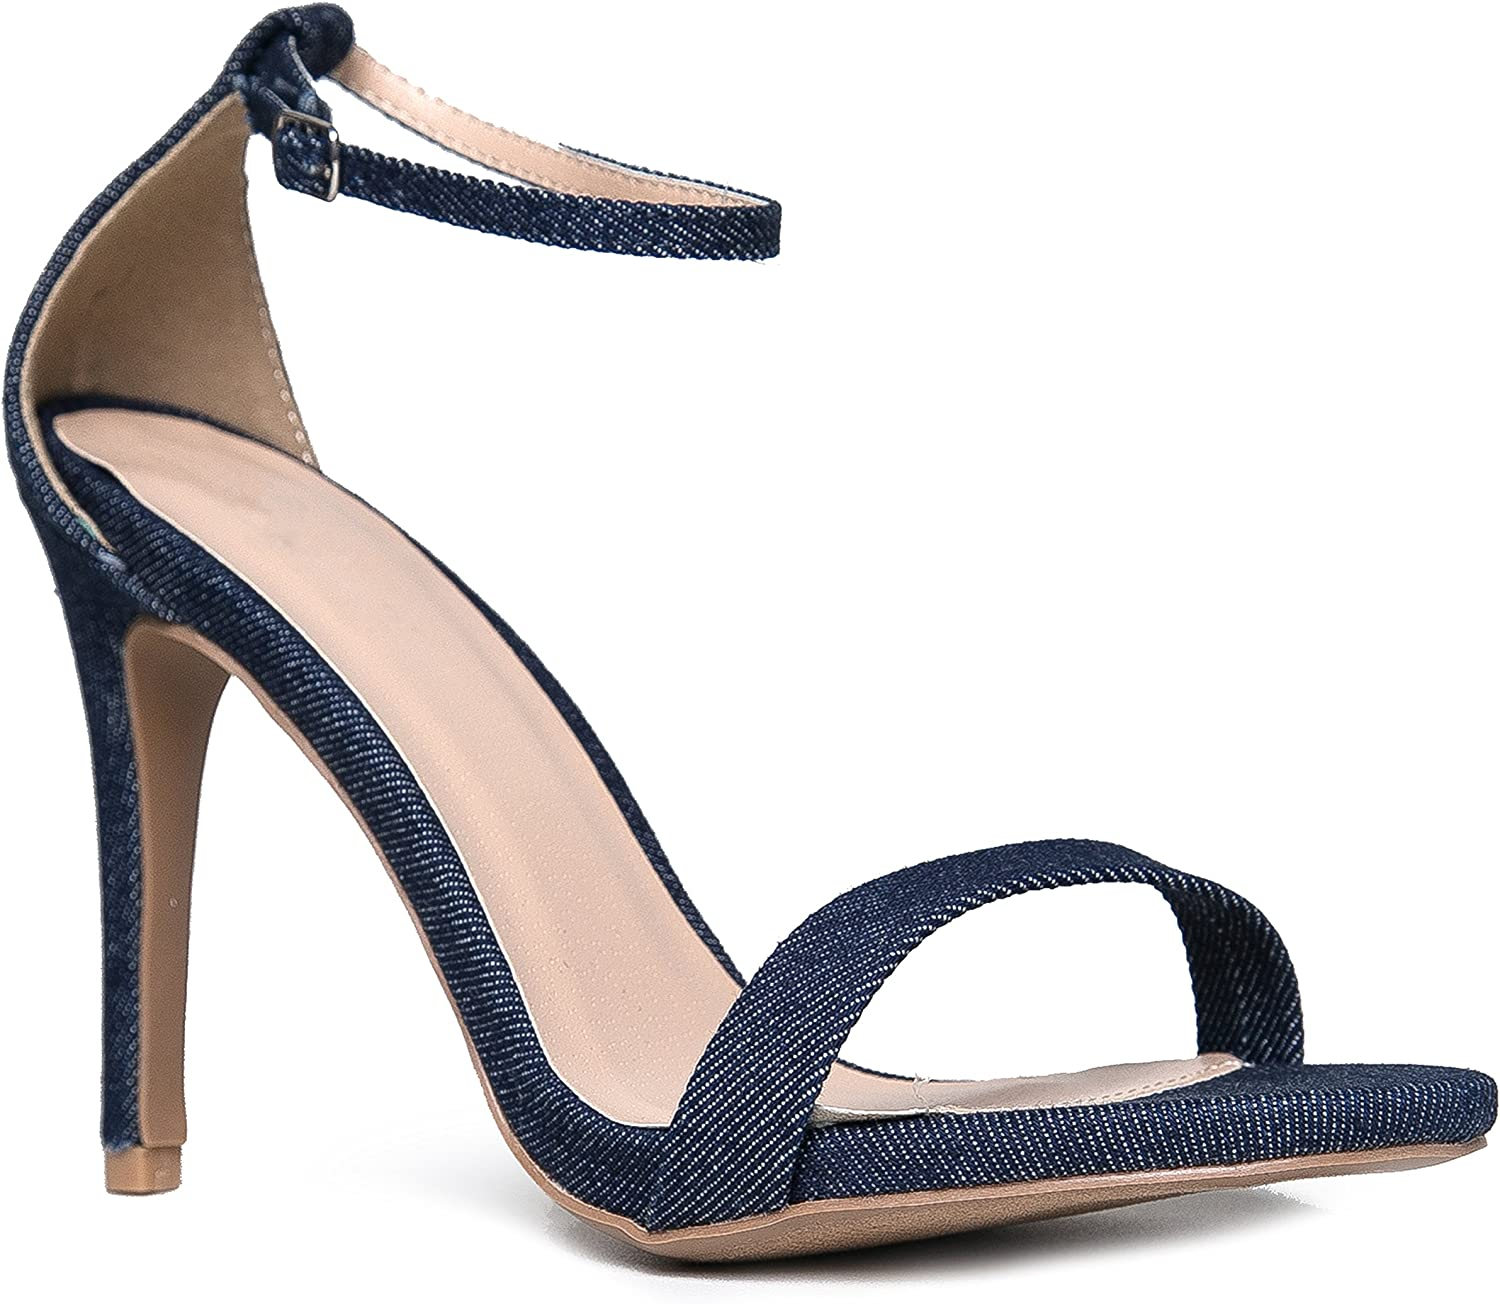 J. Adams Ankle Strap High Heel Sandal - Strappy Buckle shoes -Dress Wedding Party Bridal Pump - Aria